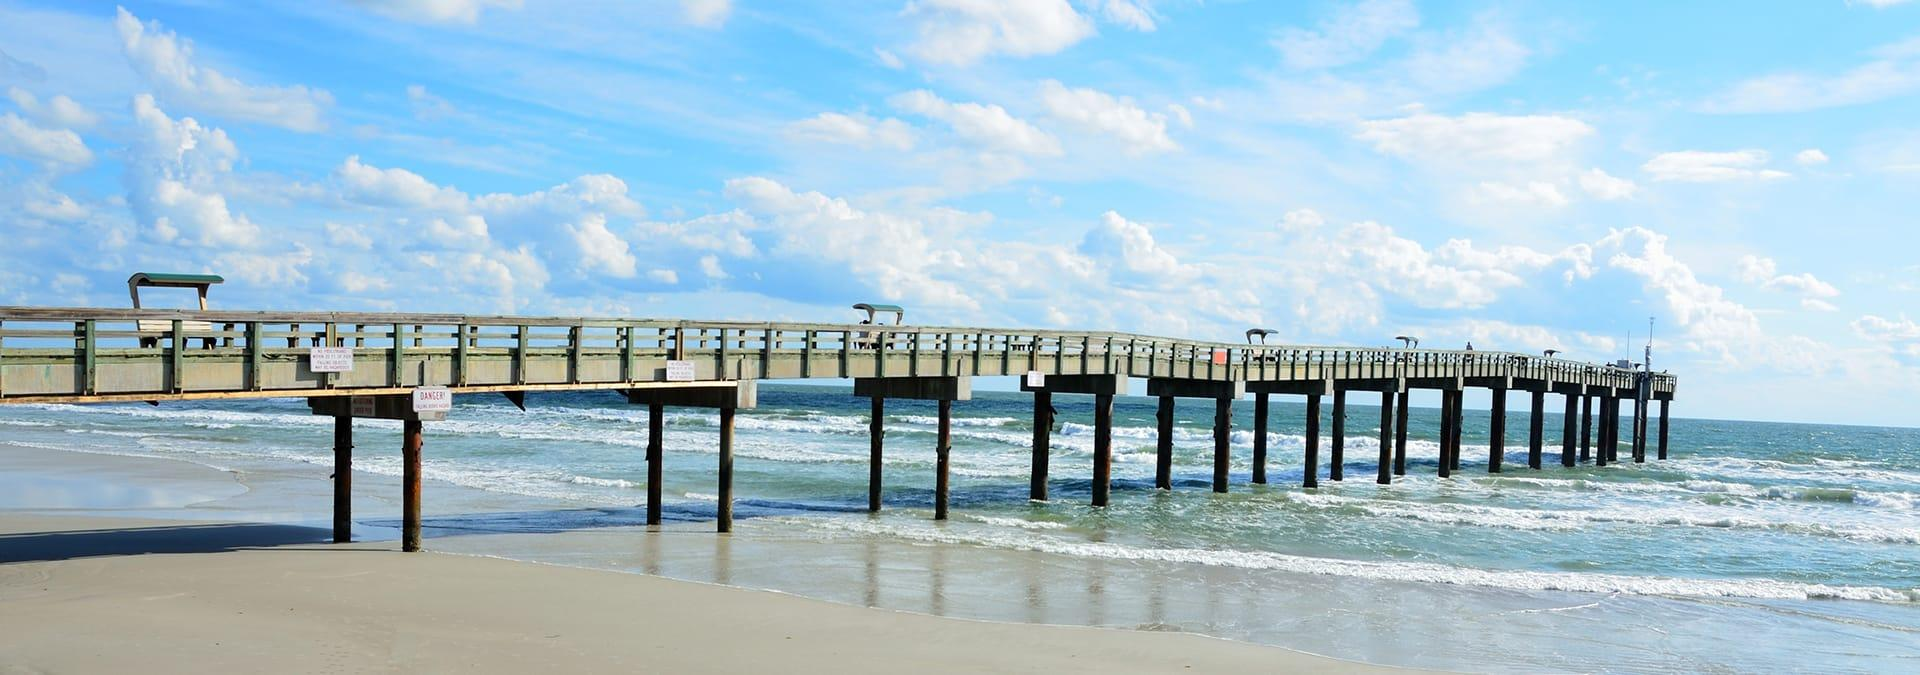 a view of a pier in st augustine beach florida